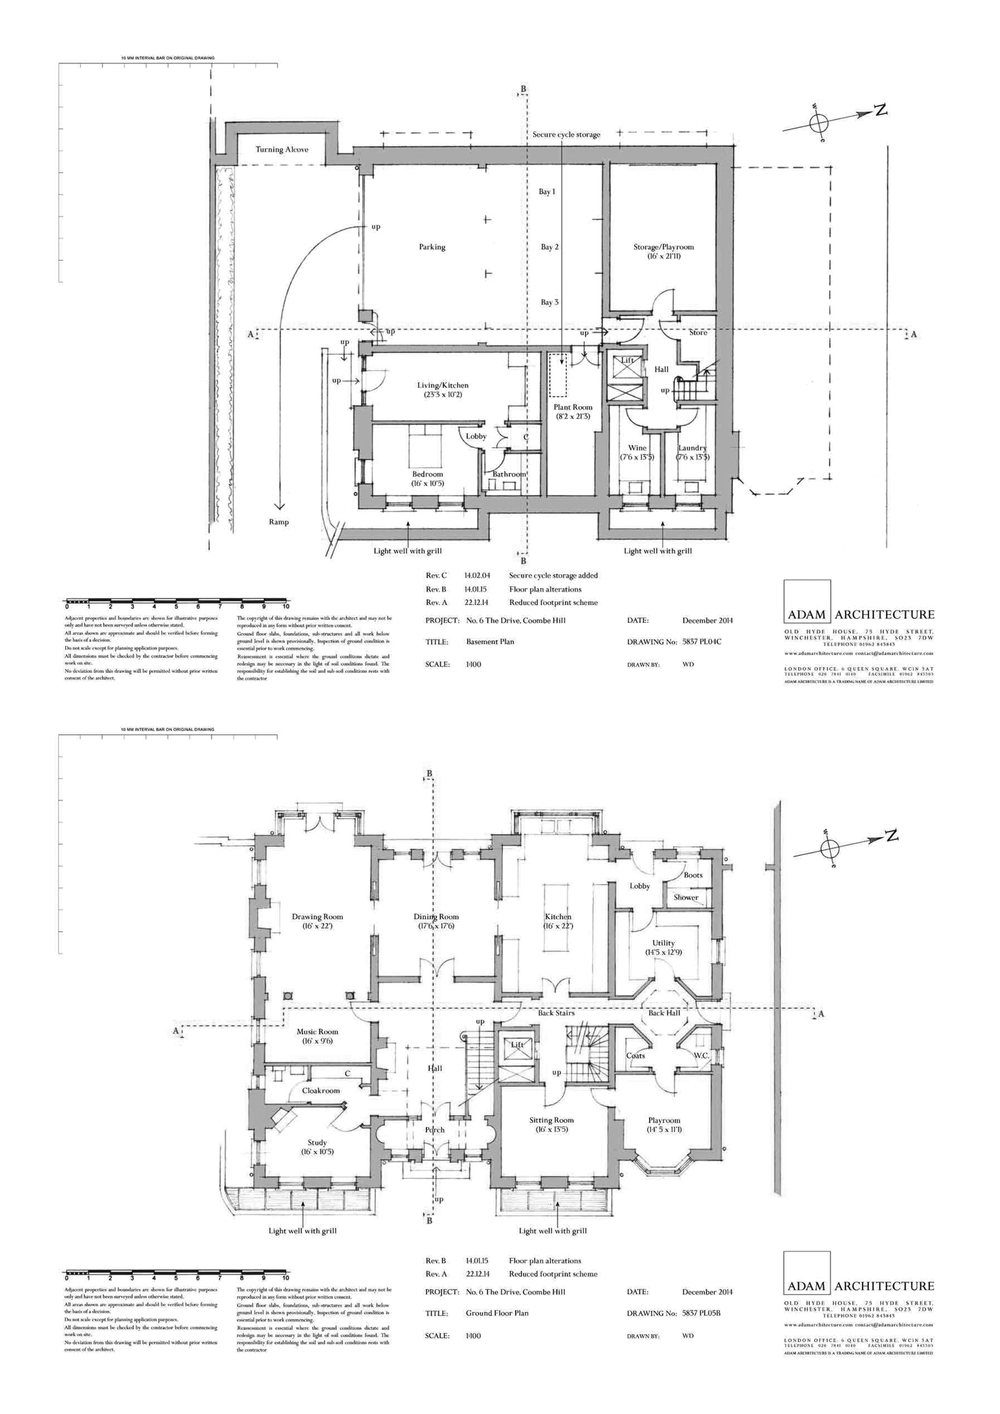 Basement & Ground Floor Plan.jpg